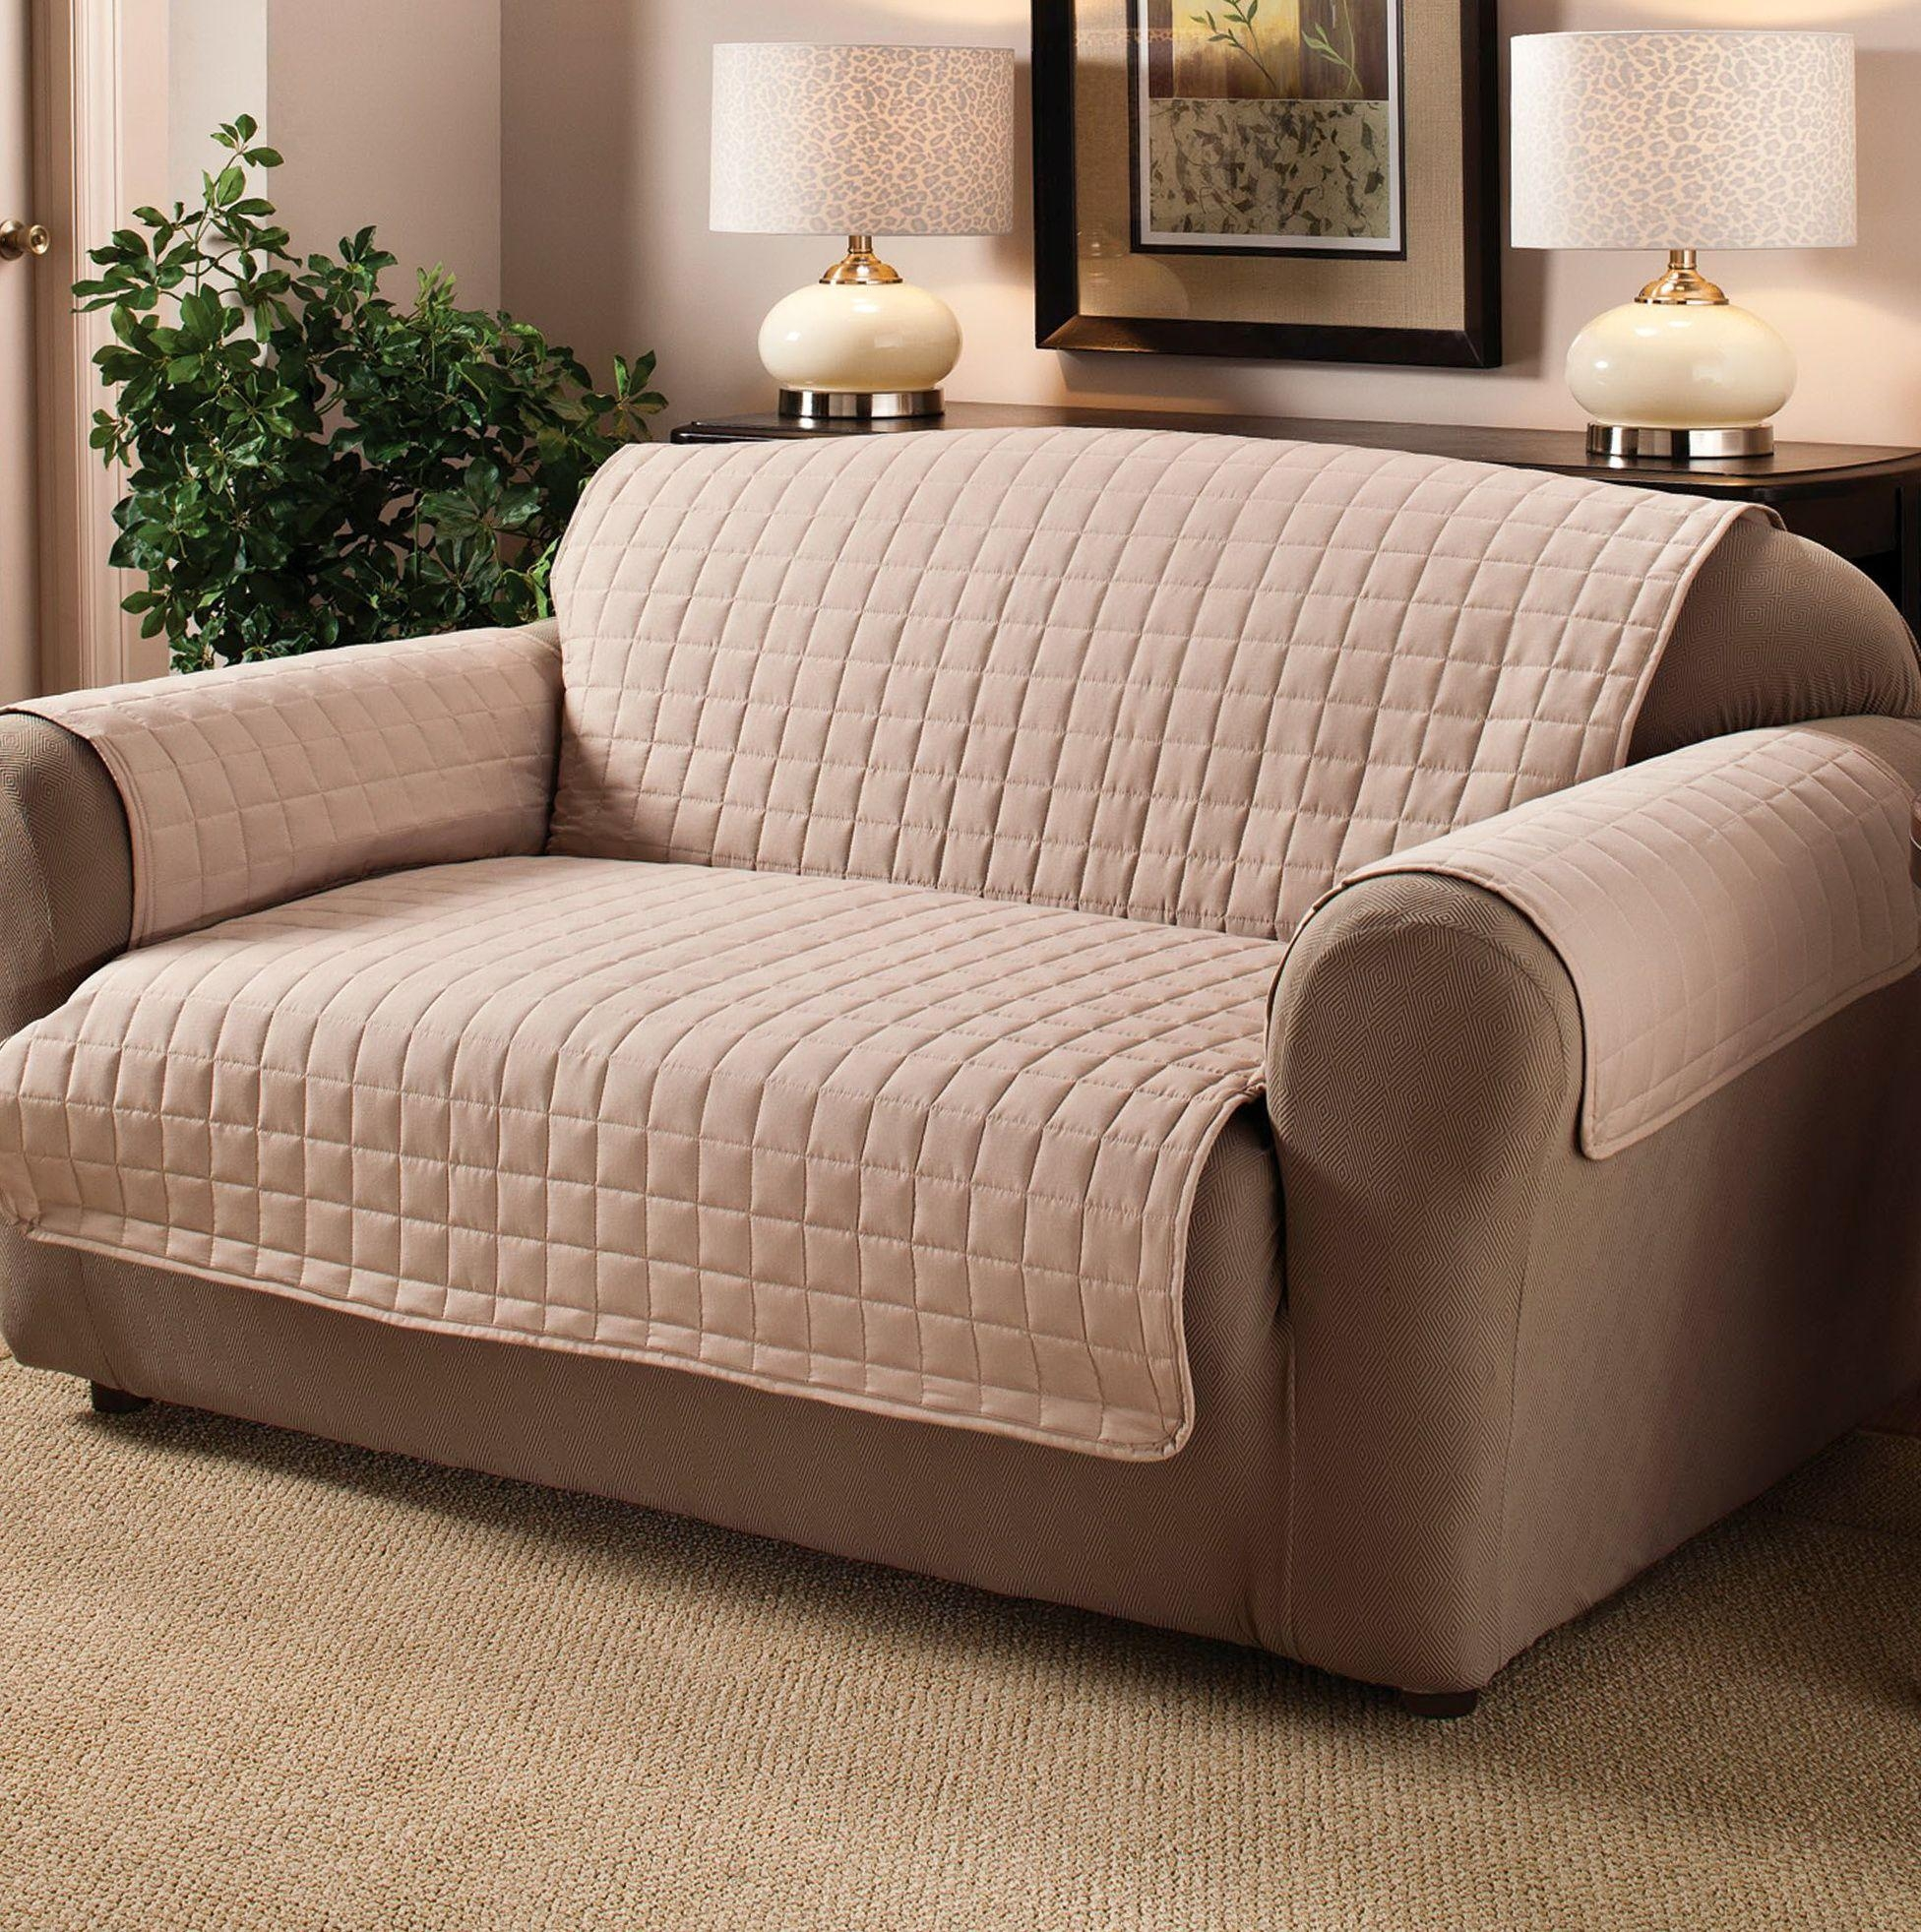 Furniture: Wonderful Walmart Couch Covers Design For Alluring Pertaining To Suede Slipcovers For Sofas (Image 4 of 20)